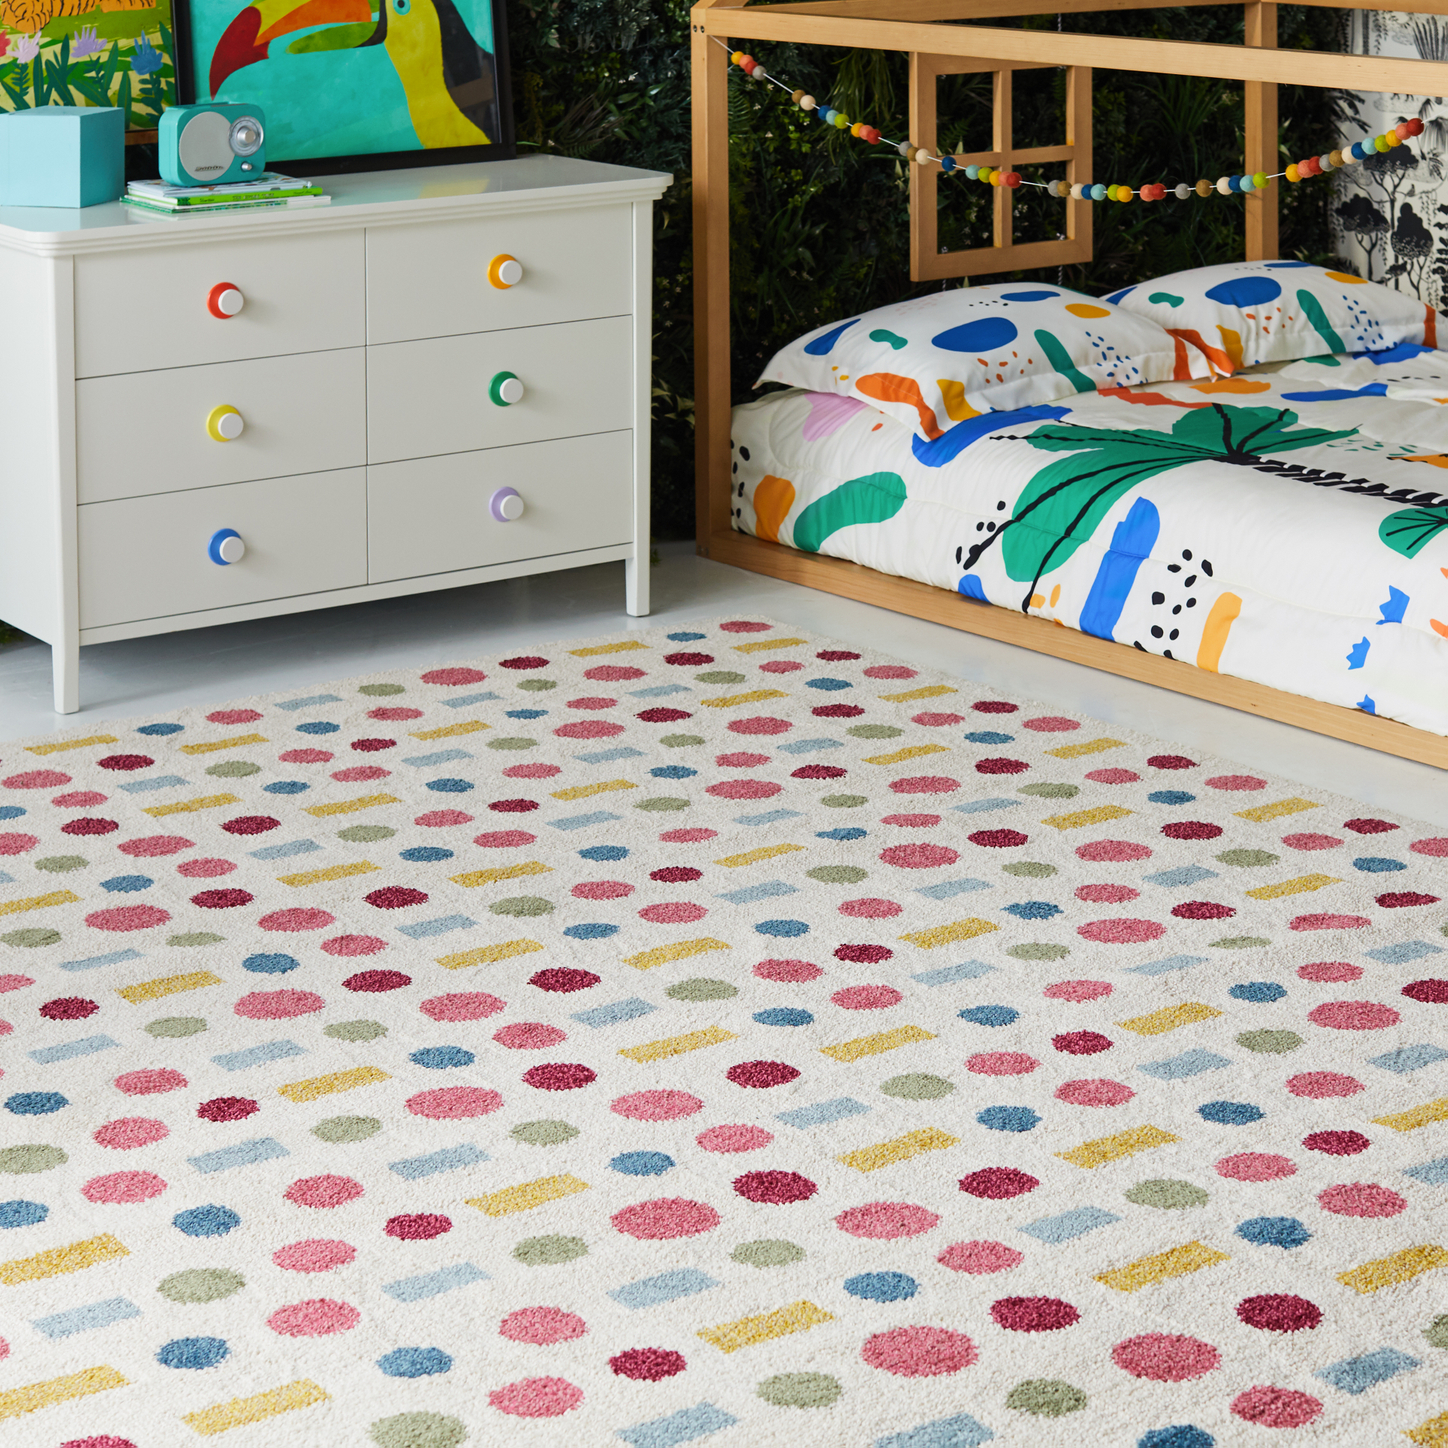 Drew Barrymore Flower Kids Dots and Dash Area Rug, 5' x 7'